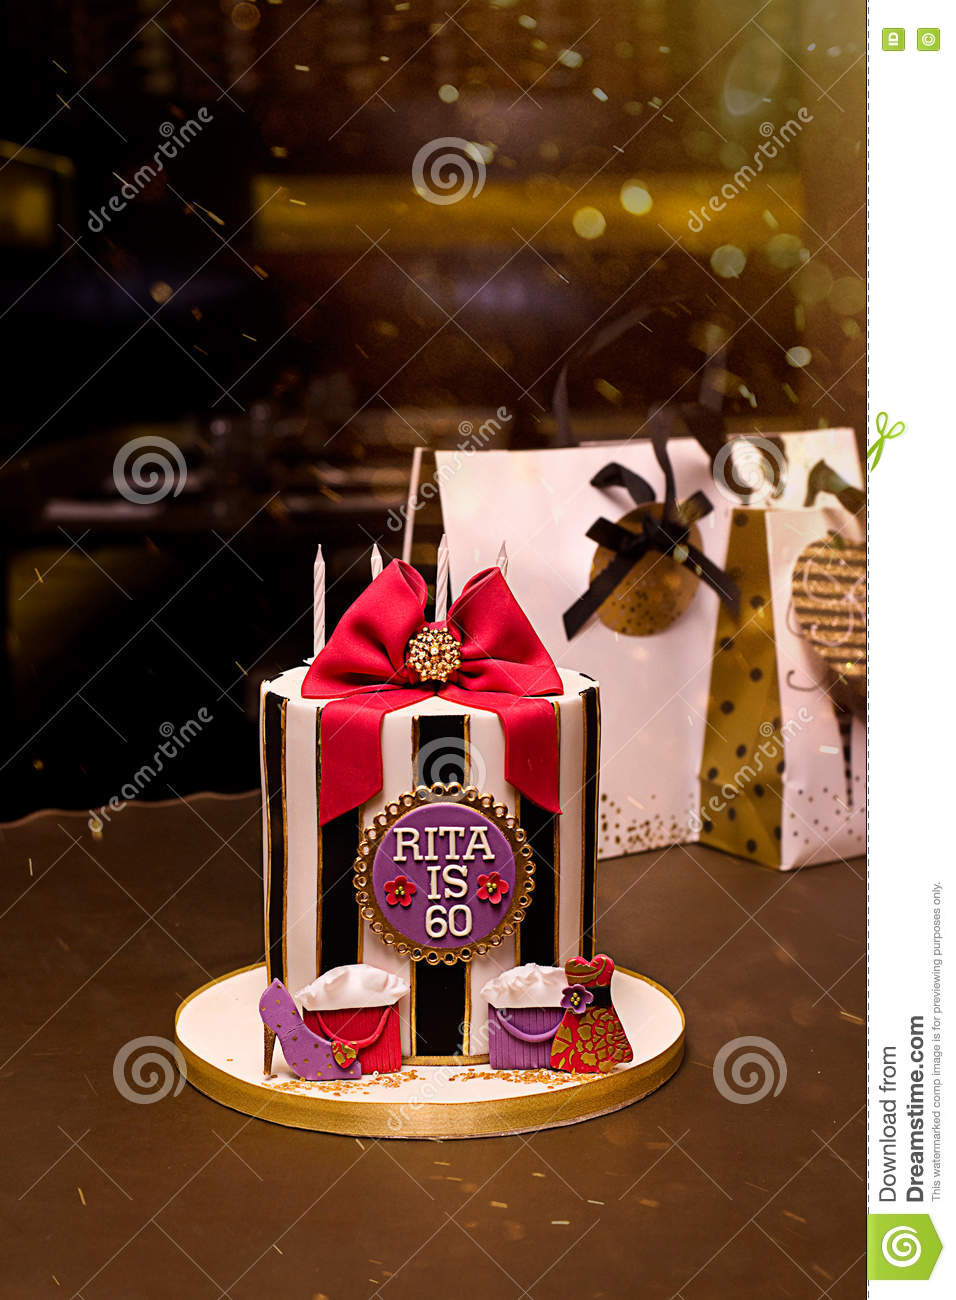 Peachy Birthday Cake Stock Photo Image Of Shoes Handbags Shoe 71618806 Funny Birthday Cards Online Alyptdamsfinfo